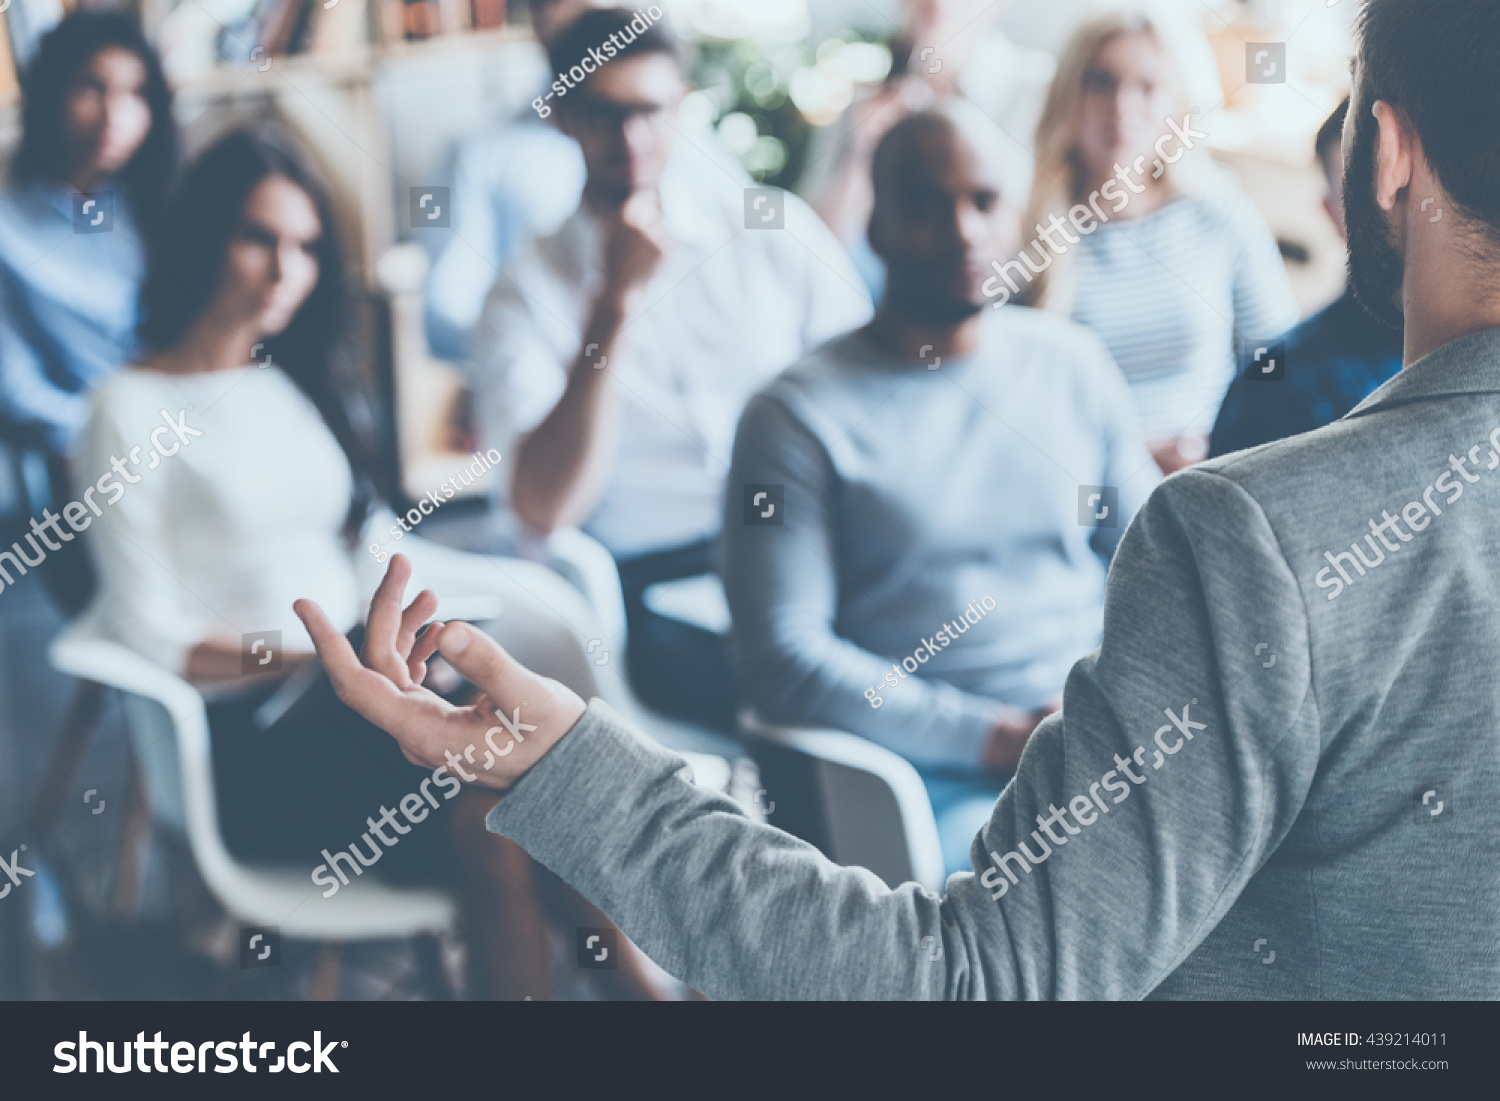 Business coach. Rear view of man gesturing with hand while standing against defocused group of people sitting at the chairs in front of him  #439214011